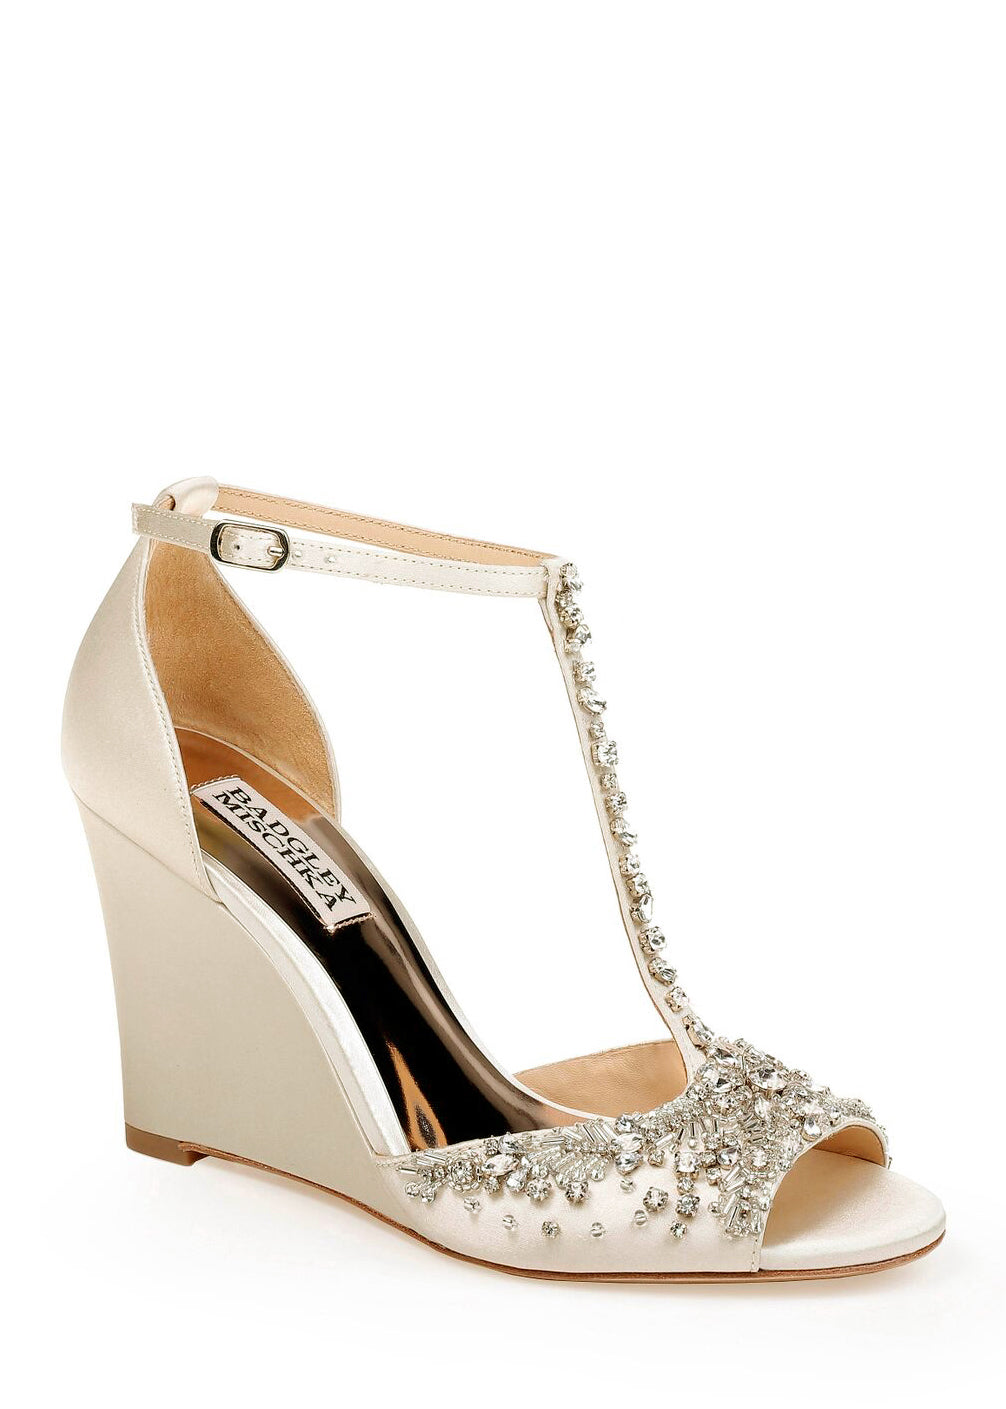 Sarah, Shoes, Badgley Mischka - Eternal Bridal